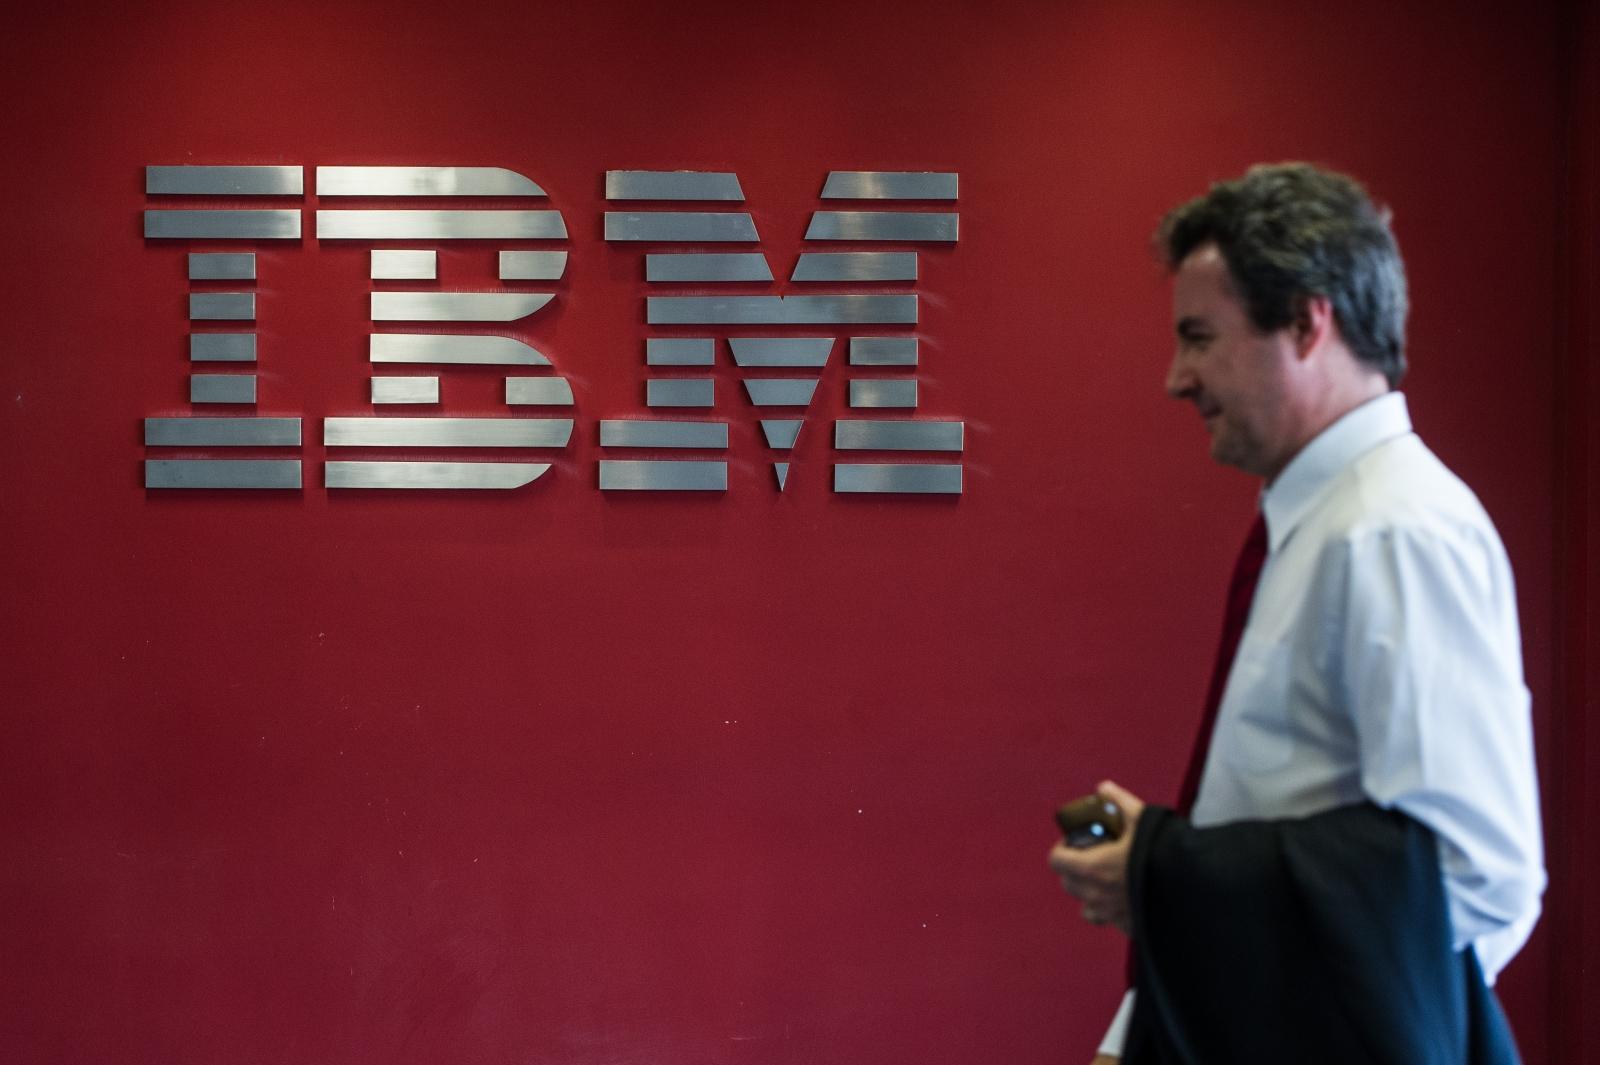 IBM logo and staffer